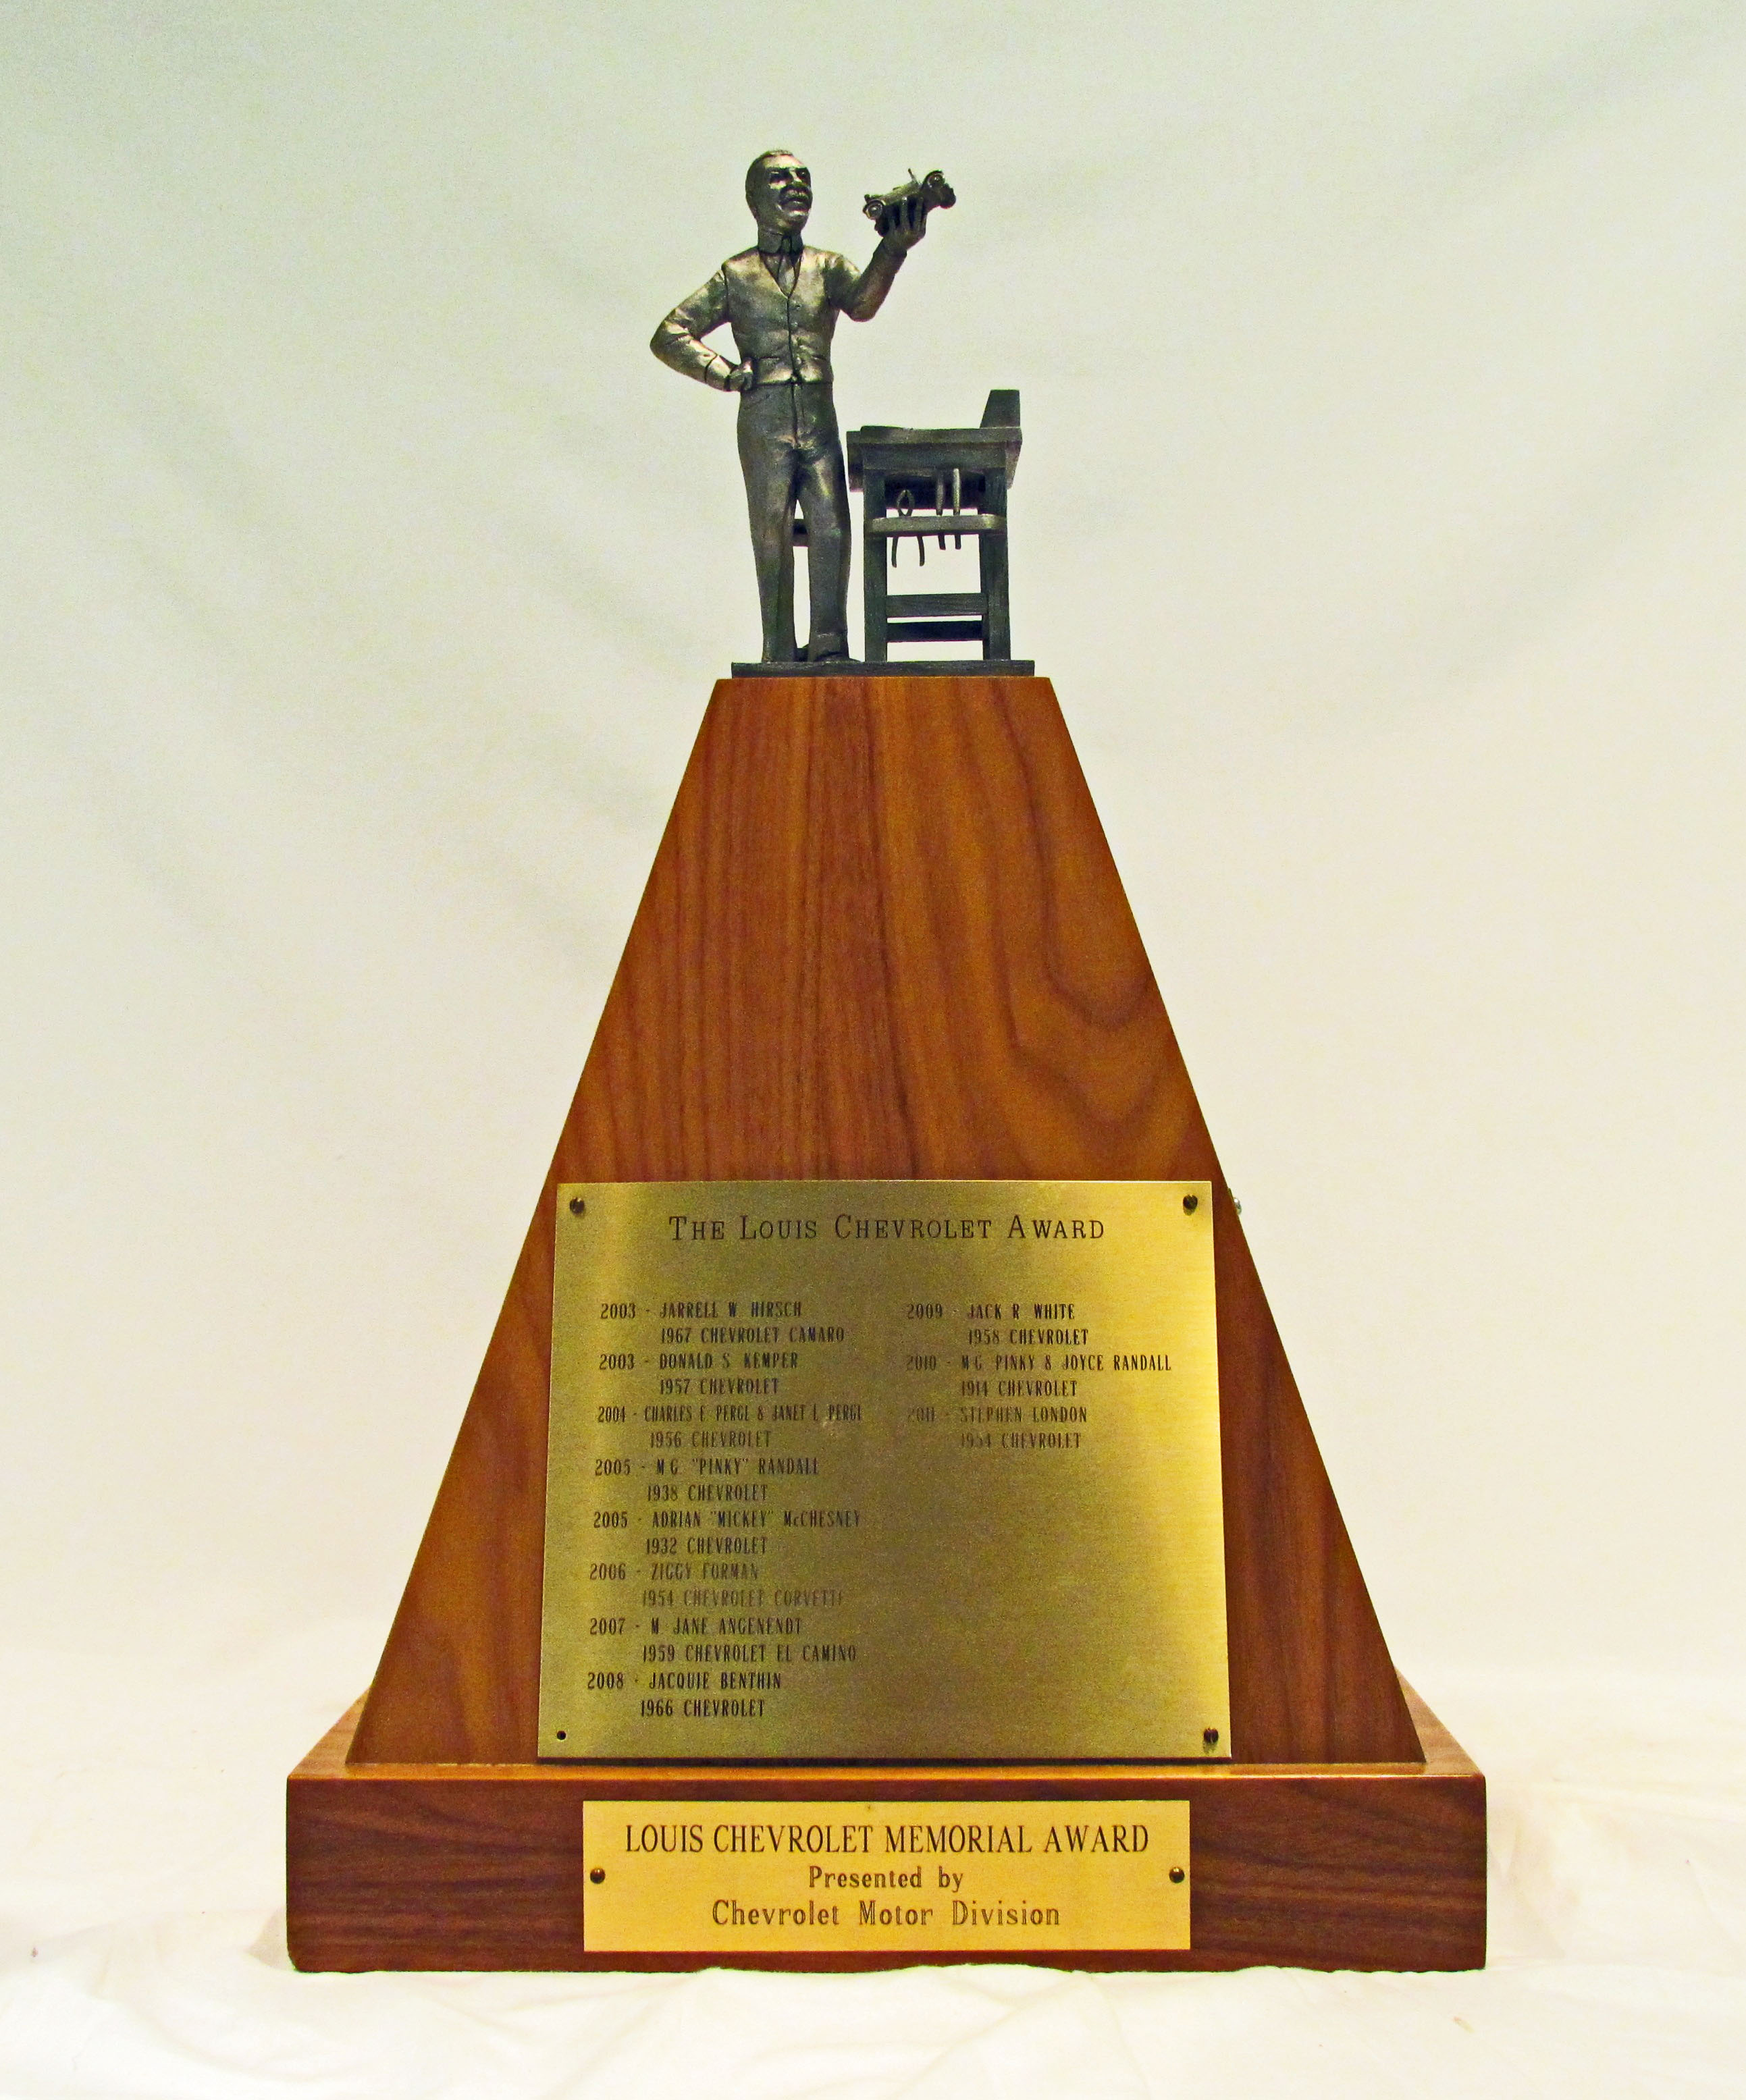 louis chevrolet memorial award